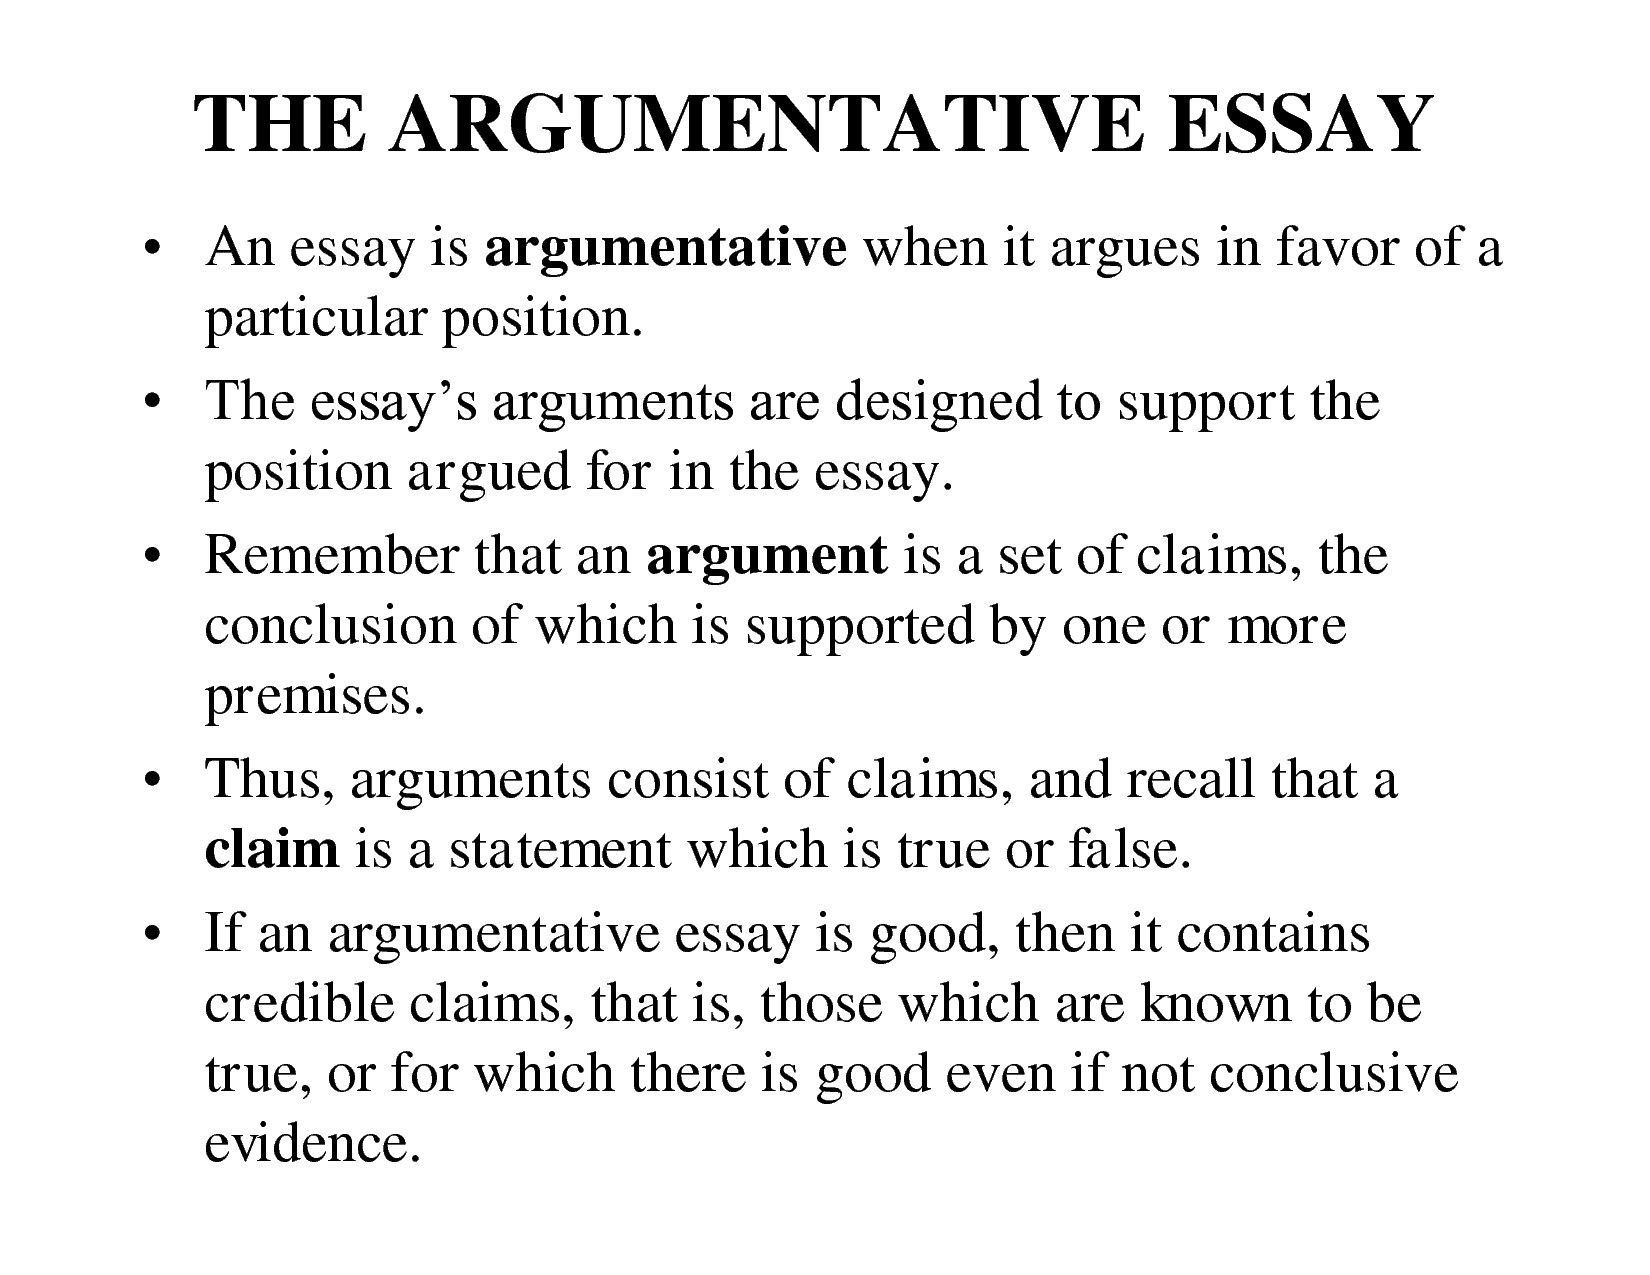 007 Essay Example Conclusion Paragraph Argumentative World Of How To Write Good Concluding For Persuasive Gse Bookbinder Co Rega Examples Argument Awesome Abortion Full